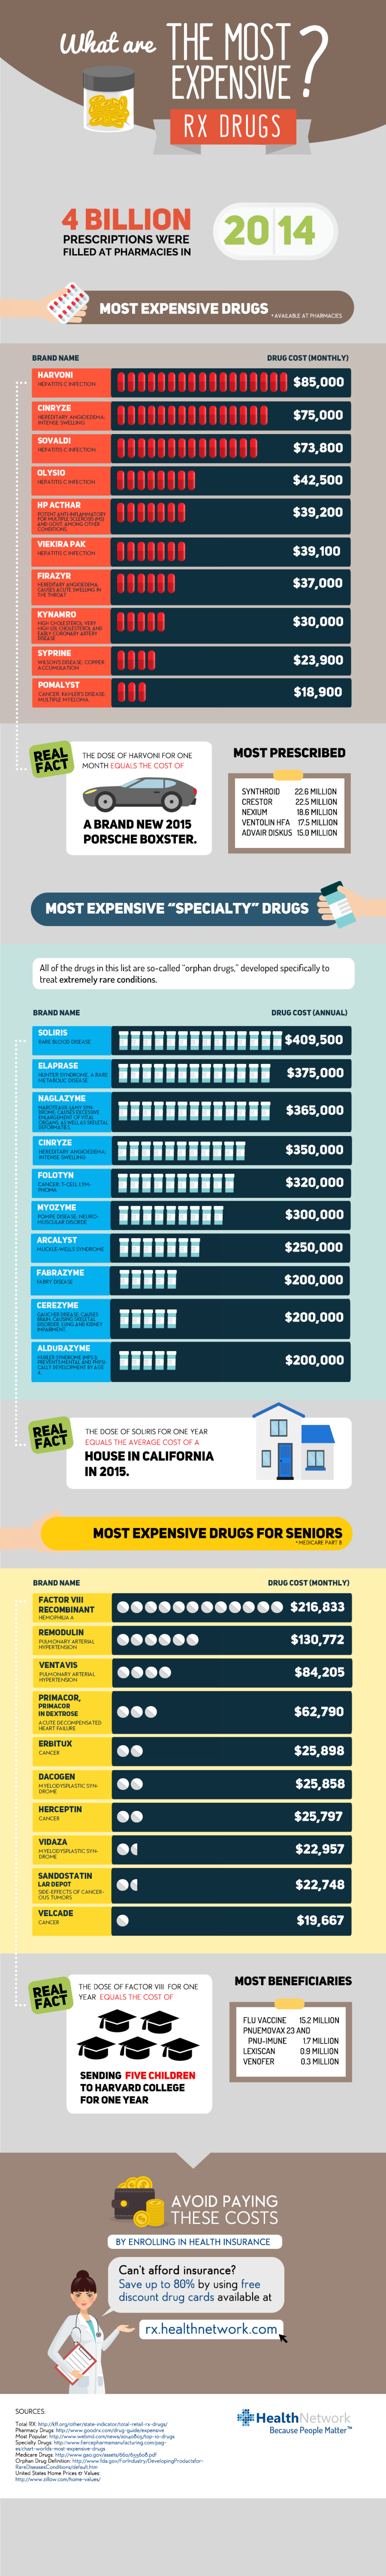 Extreme drug pricing. Here's the most expensive Rx drugs in the US Infographic